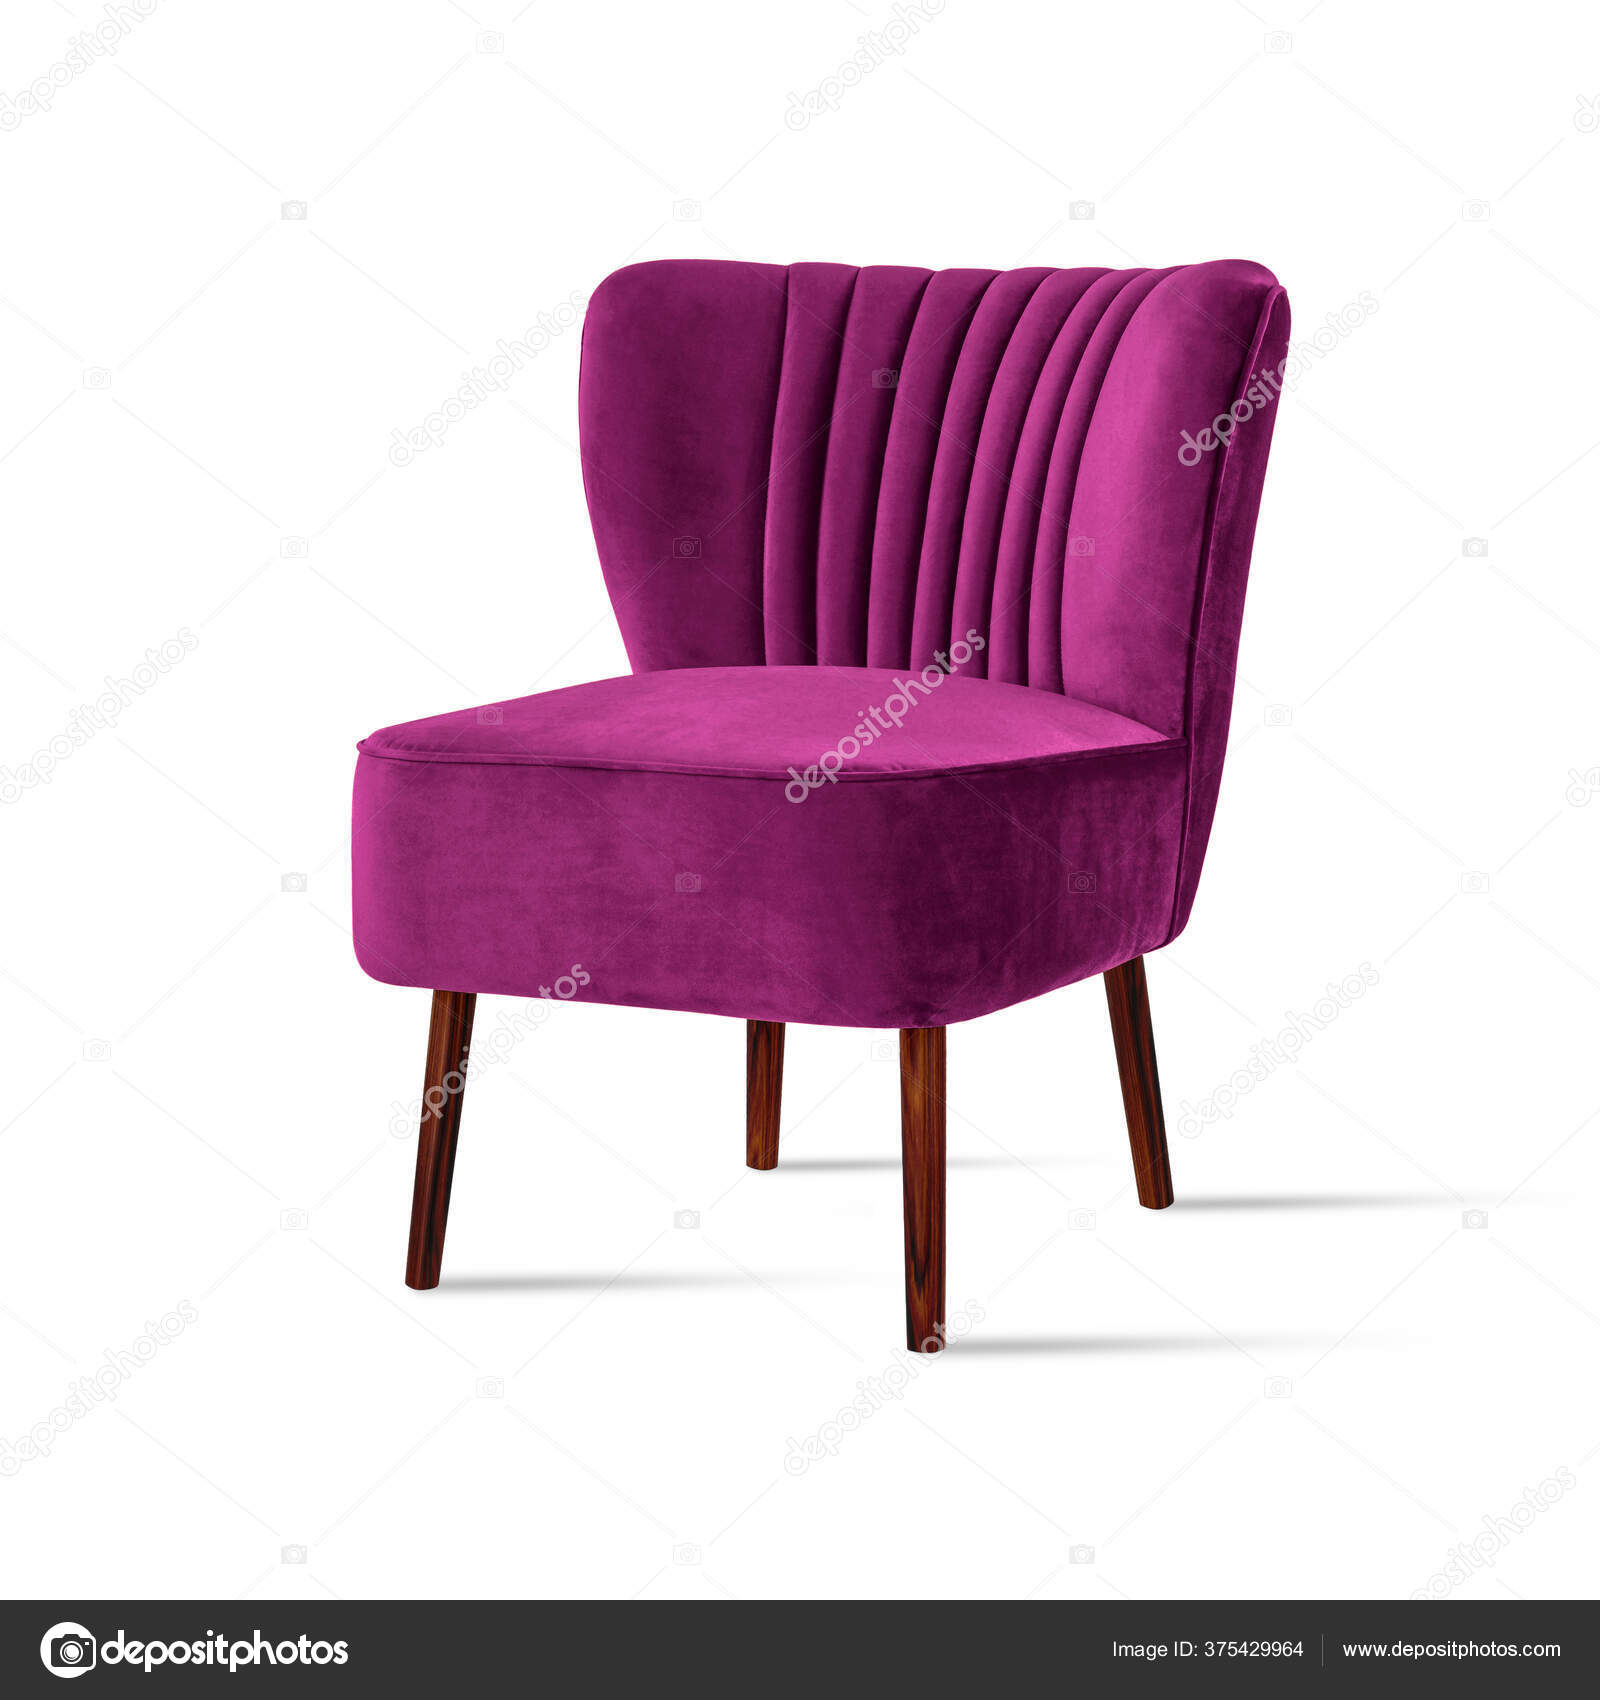 Classic Armchair Art Deco Style Hot Pink Velvet Wooden Legs Stock Photo C Artavet 375429964